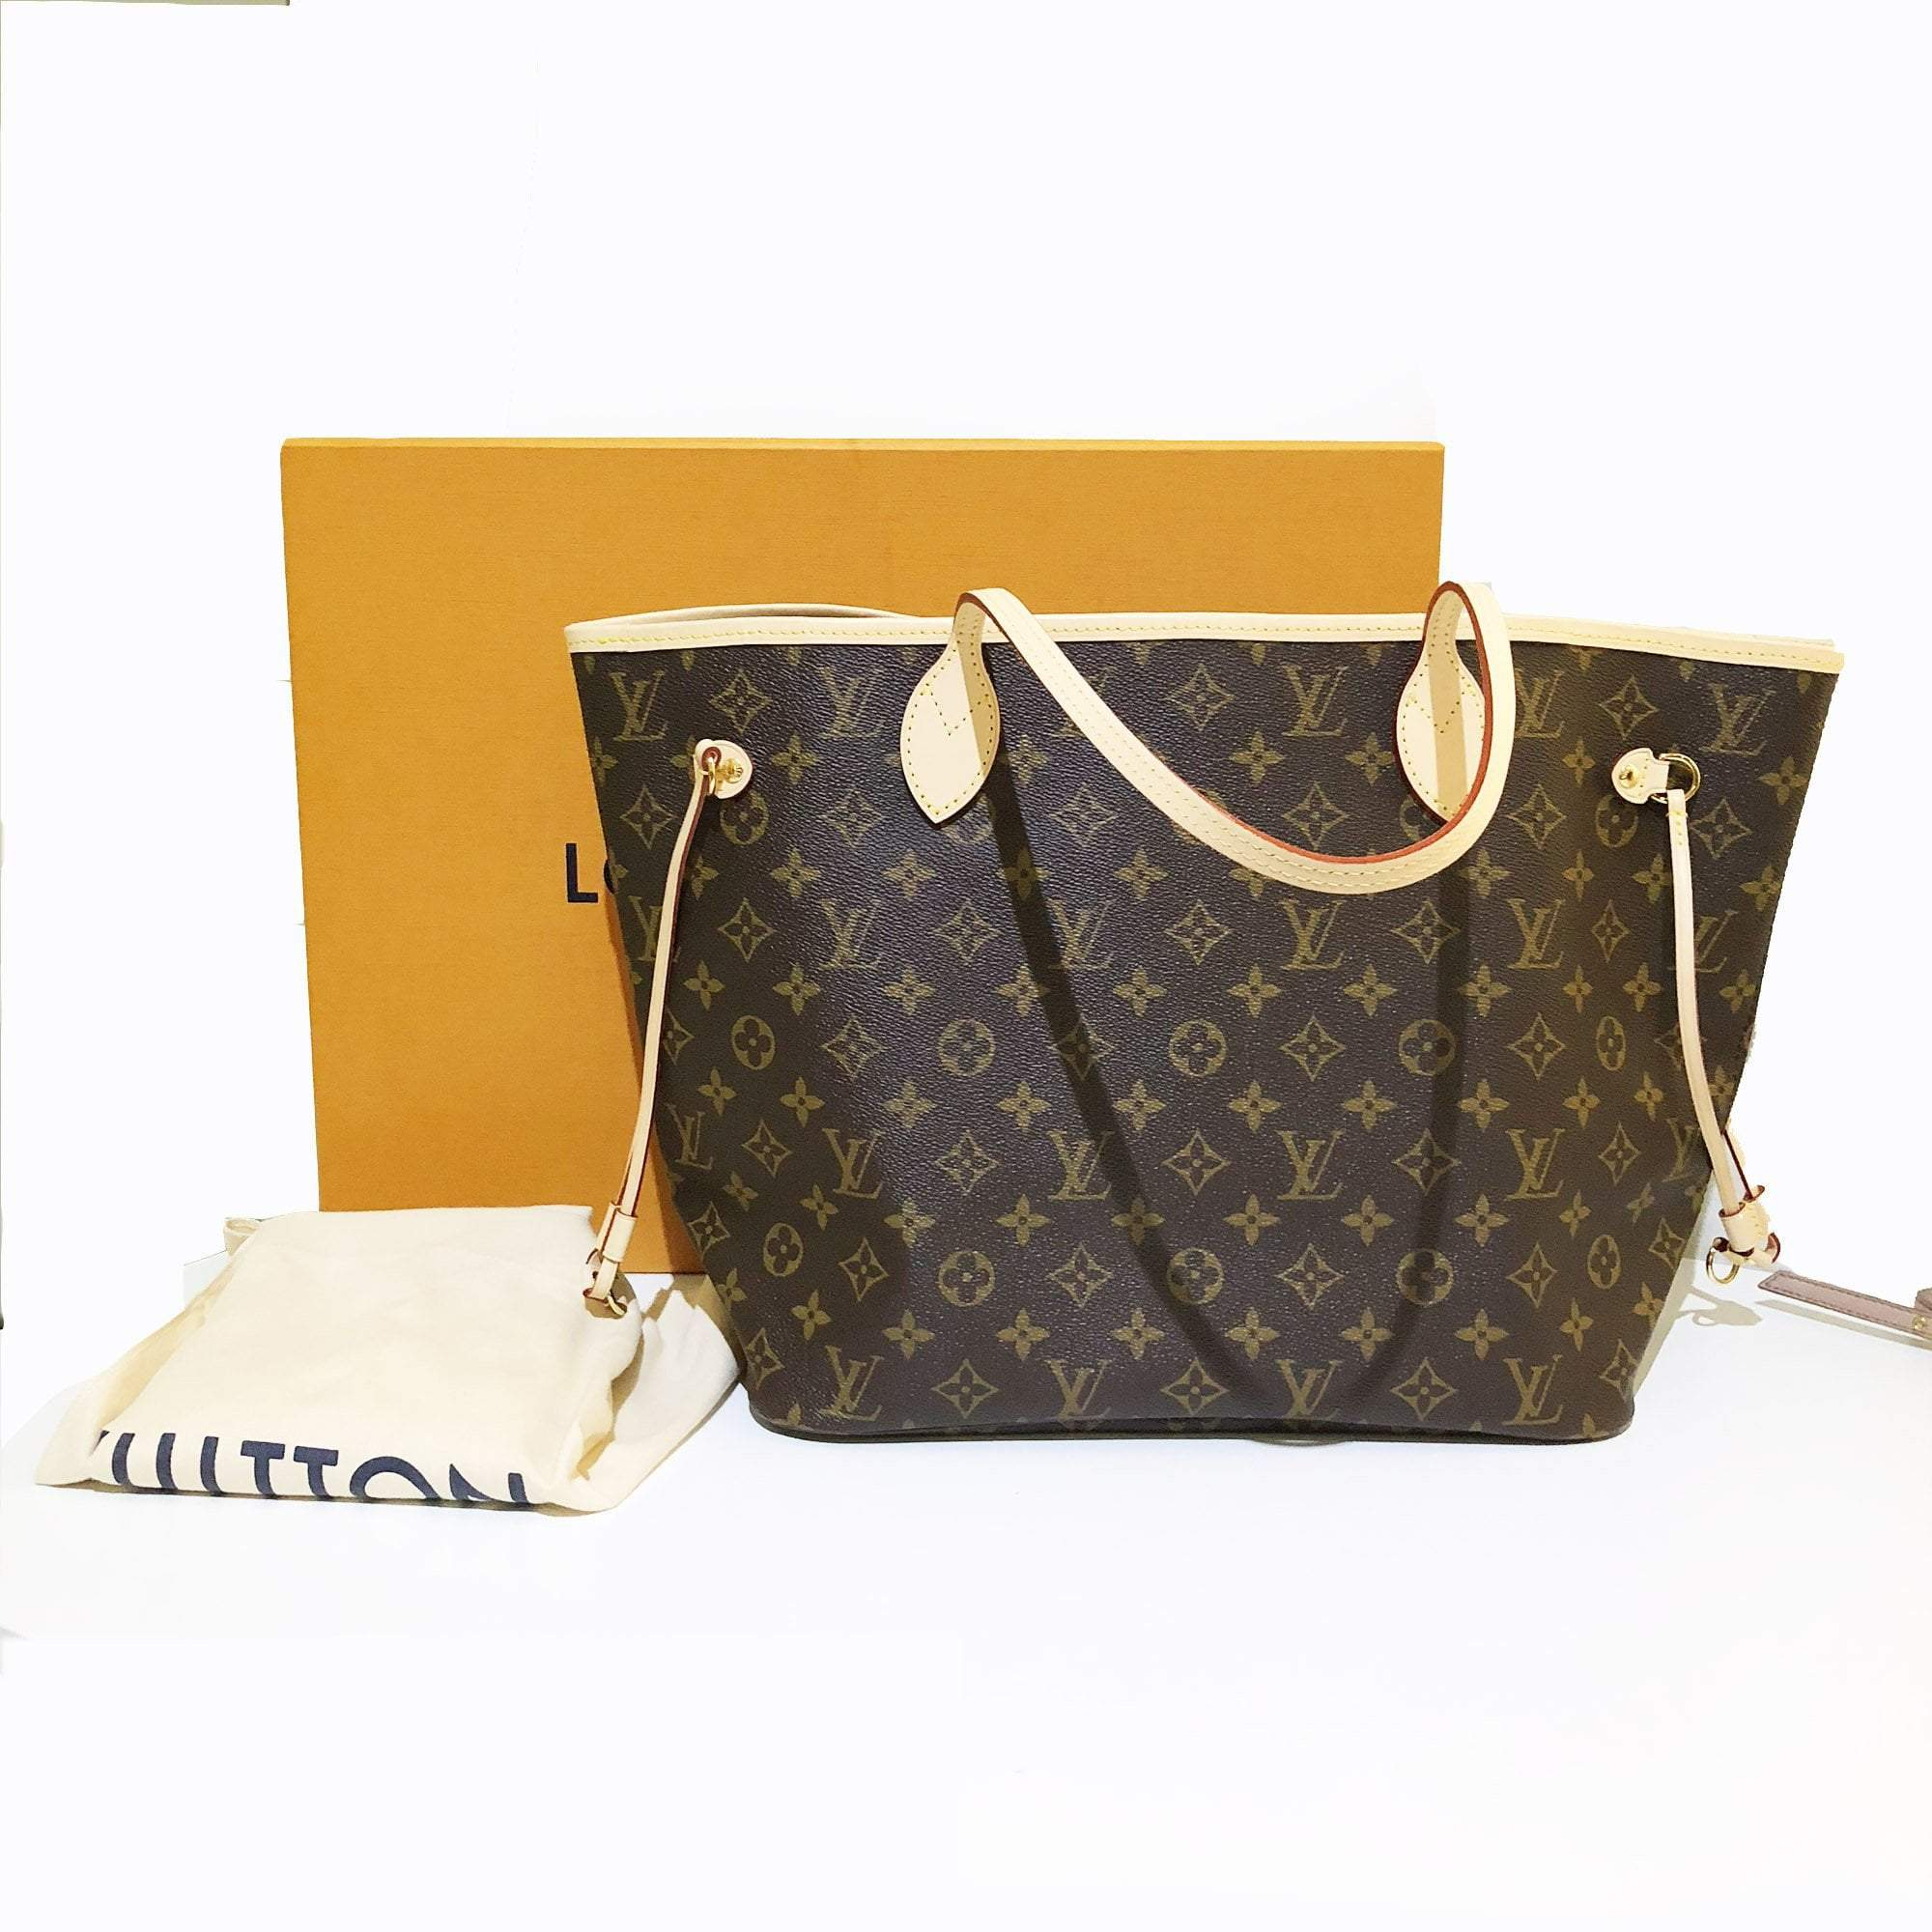 Louis Vuitton Monogram Canvas Neverfull MM Bag